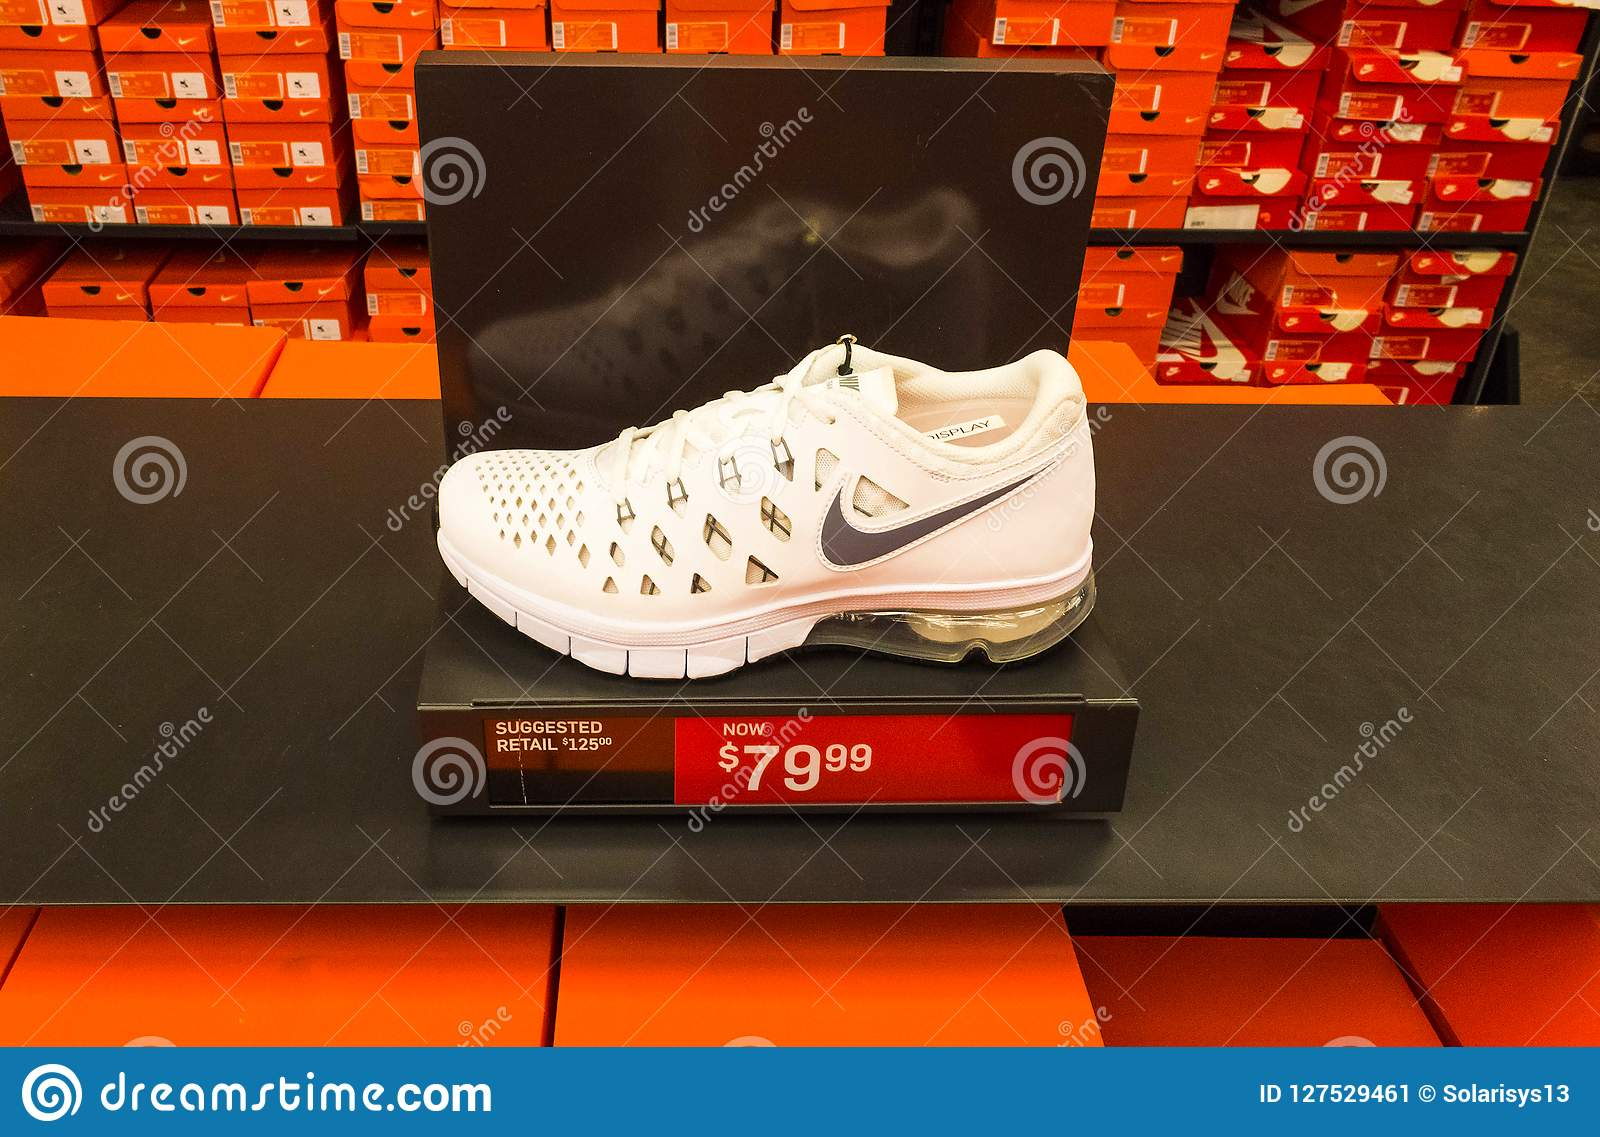 Nike Shoes Of 82018Background Boxes OrlandoUsa May Stacked PXw80Onk